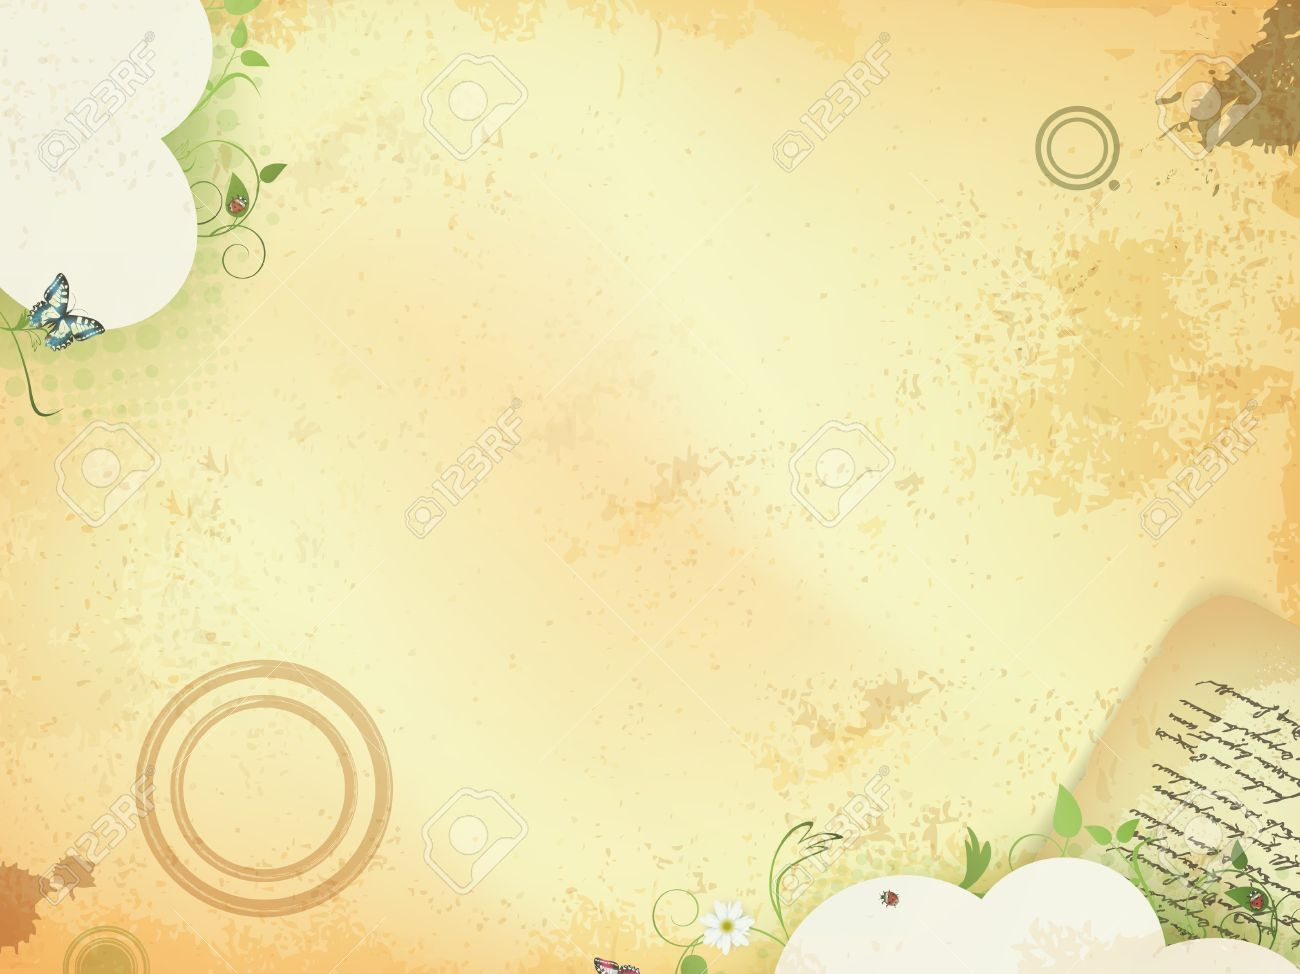 Vintage grunge background with 18th century letter and nature elements - 9929512